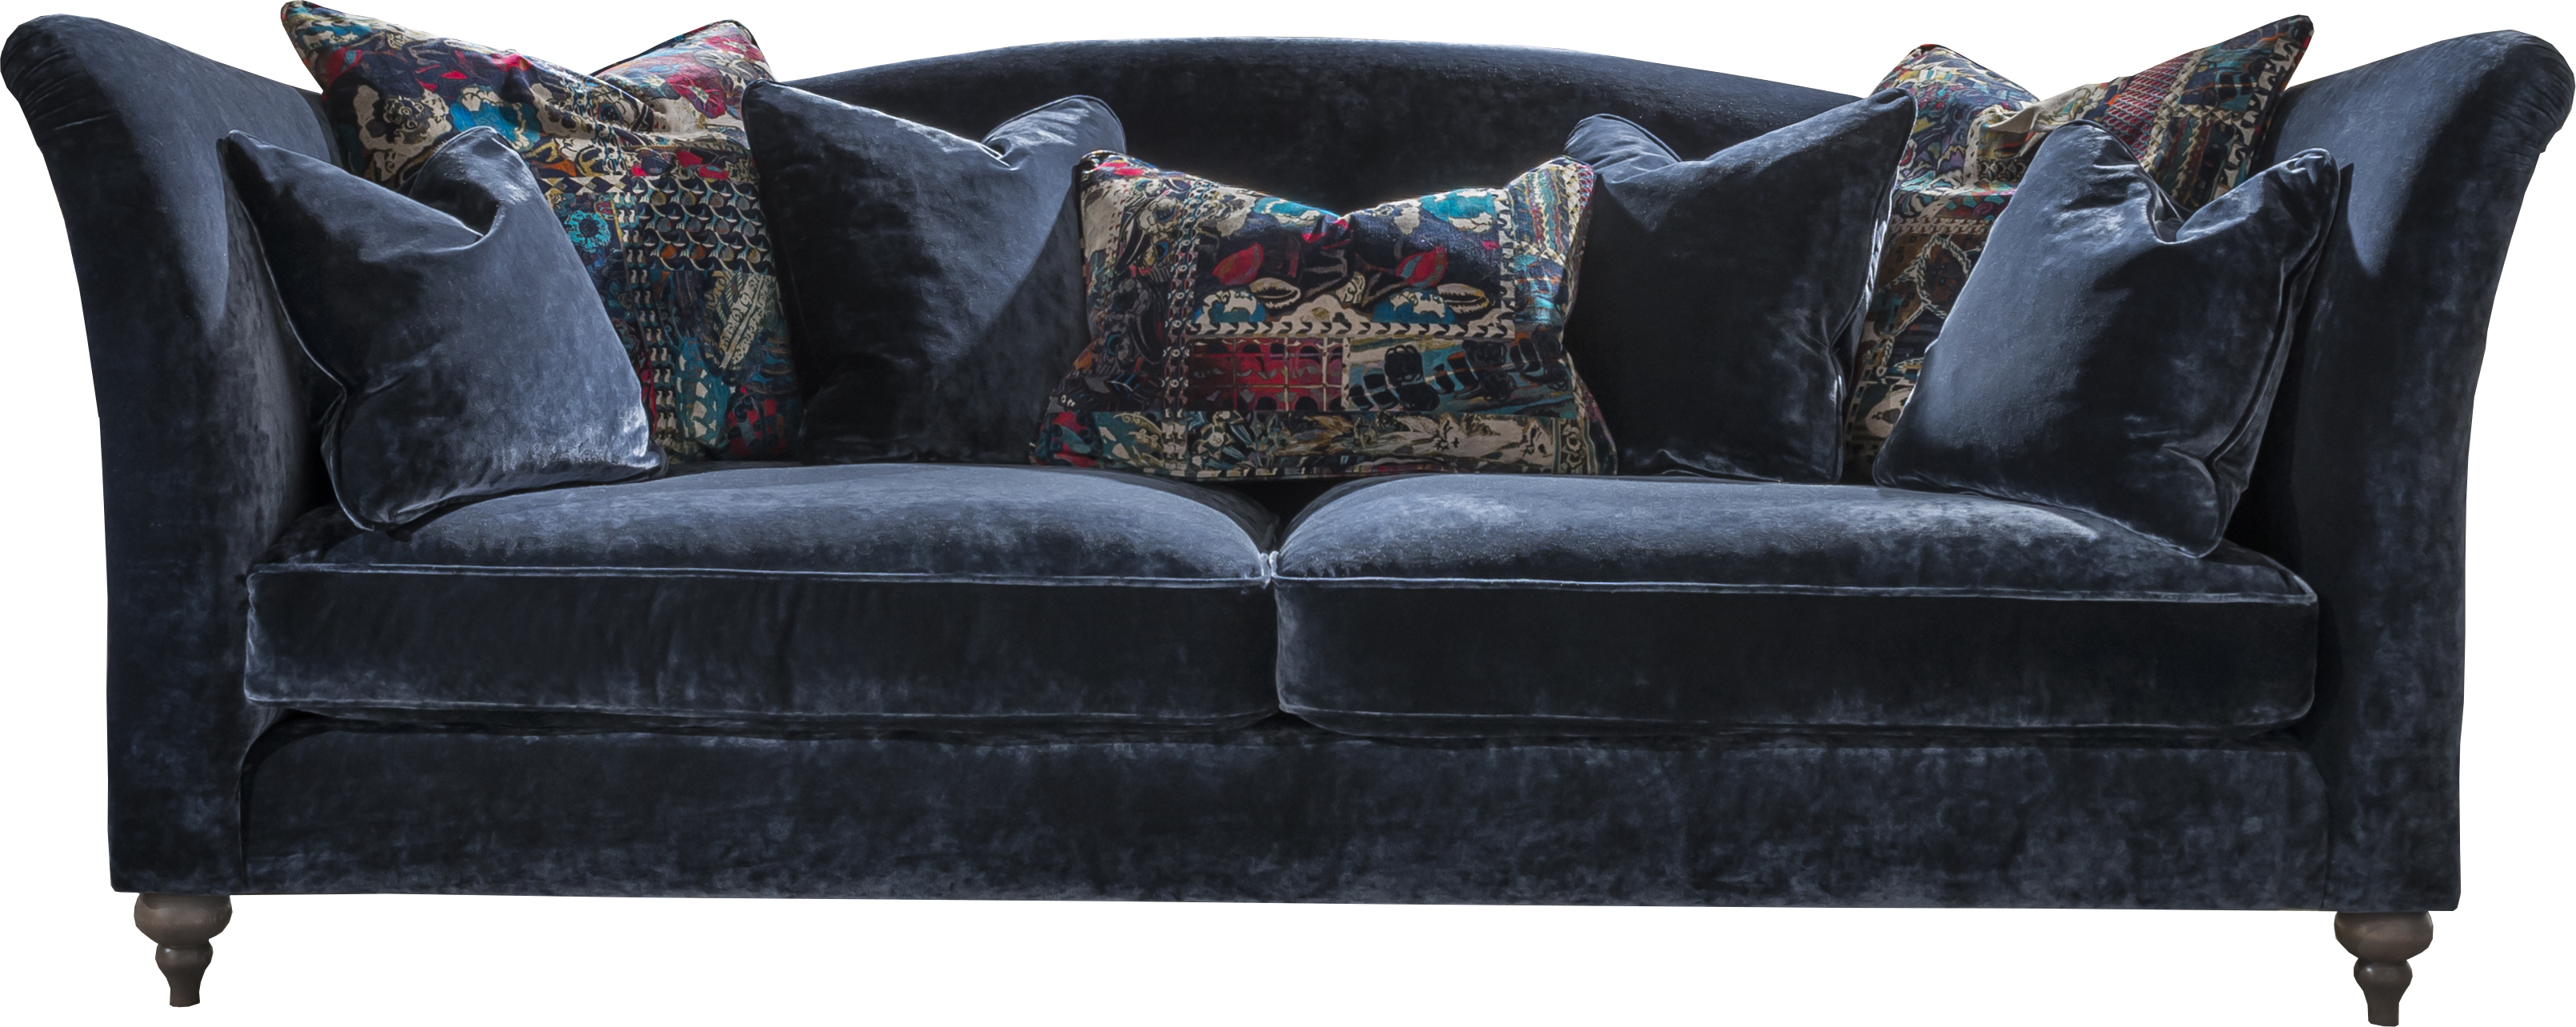 Monique Grand Sofa